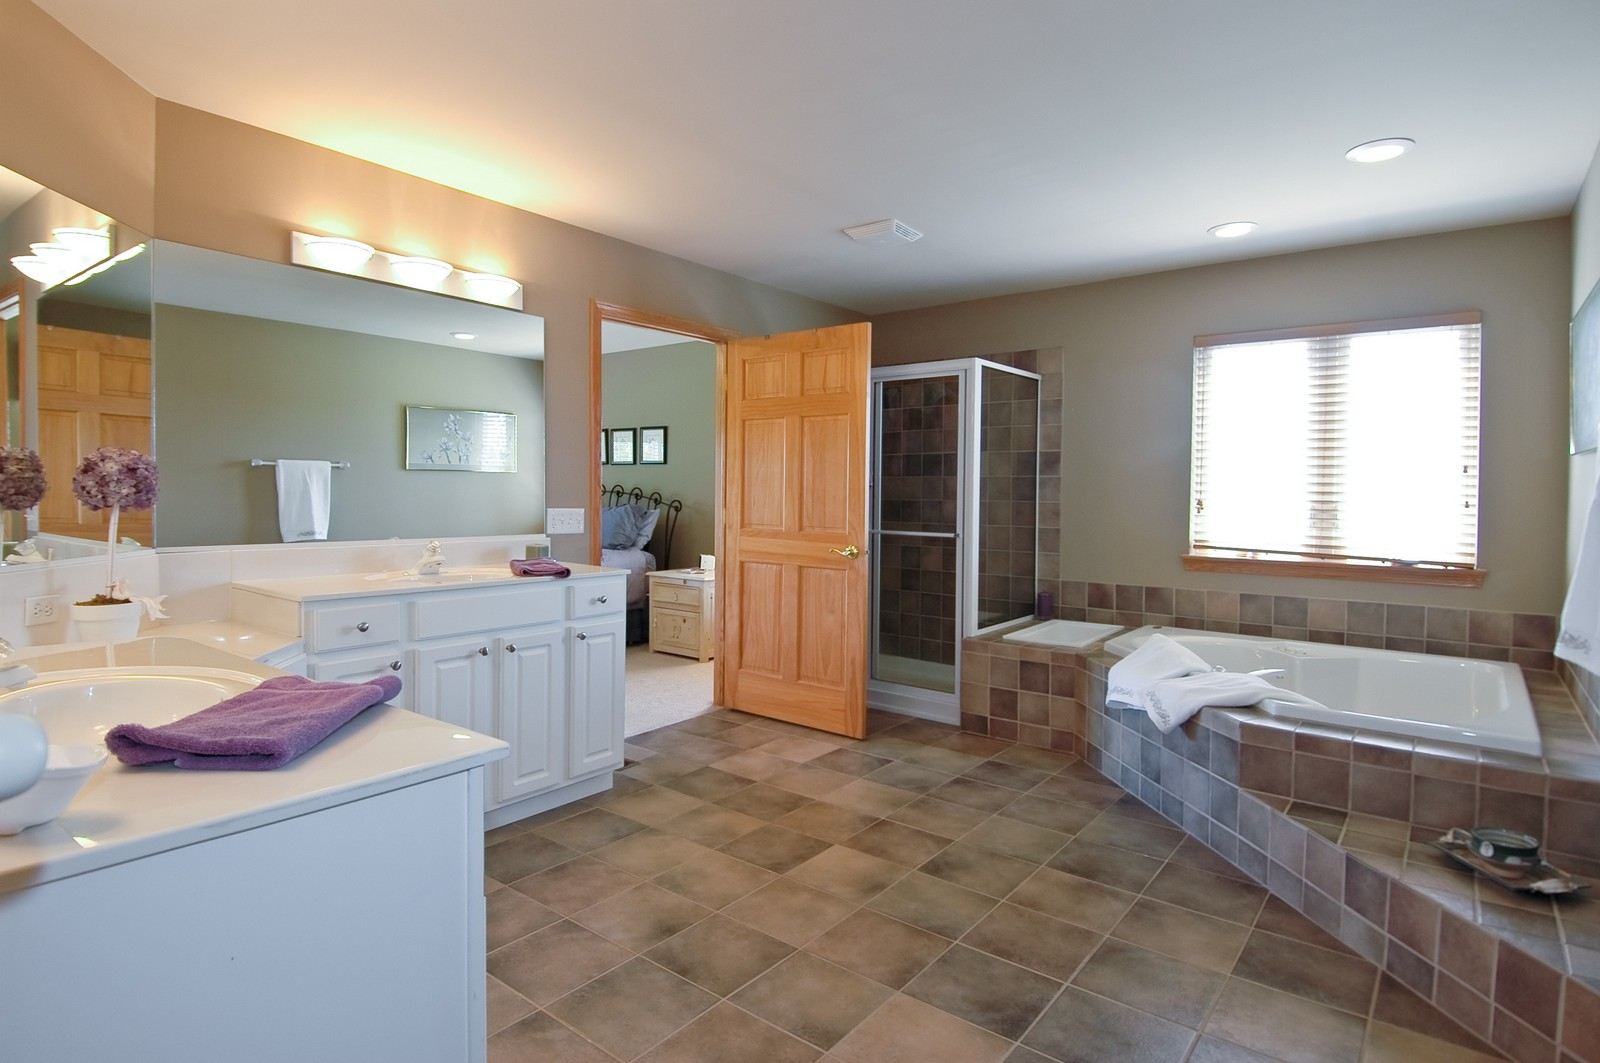 Real Estate Photography - 750 Saratoga Circle, Algonquin, IL, 60102 - Master Bathroom